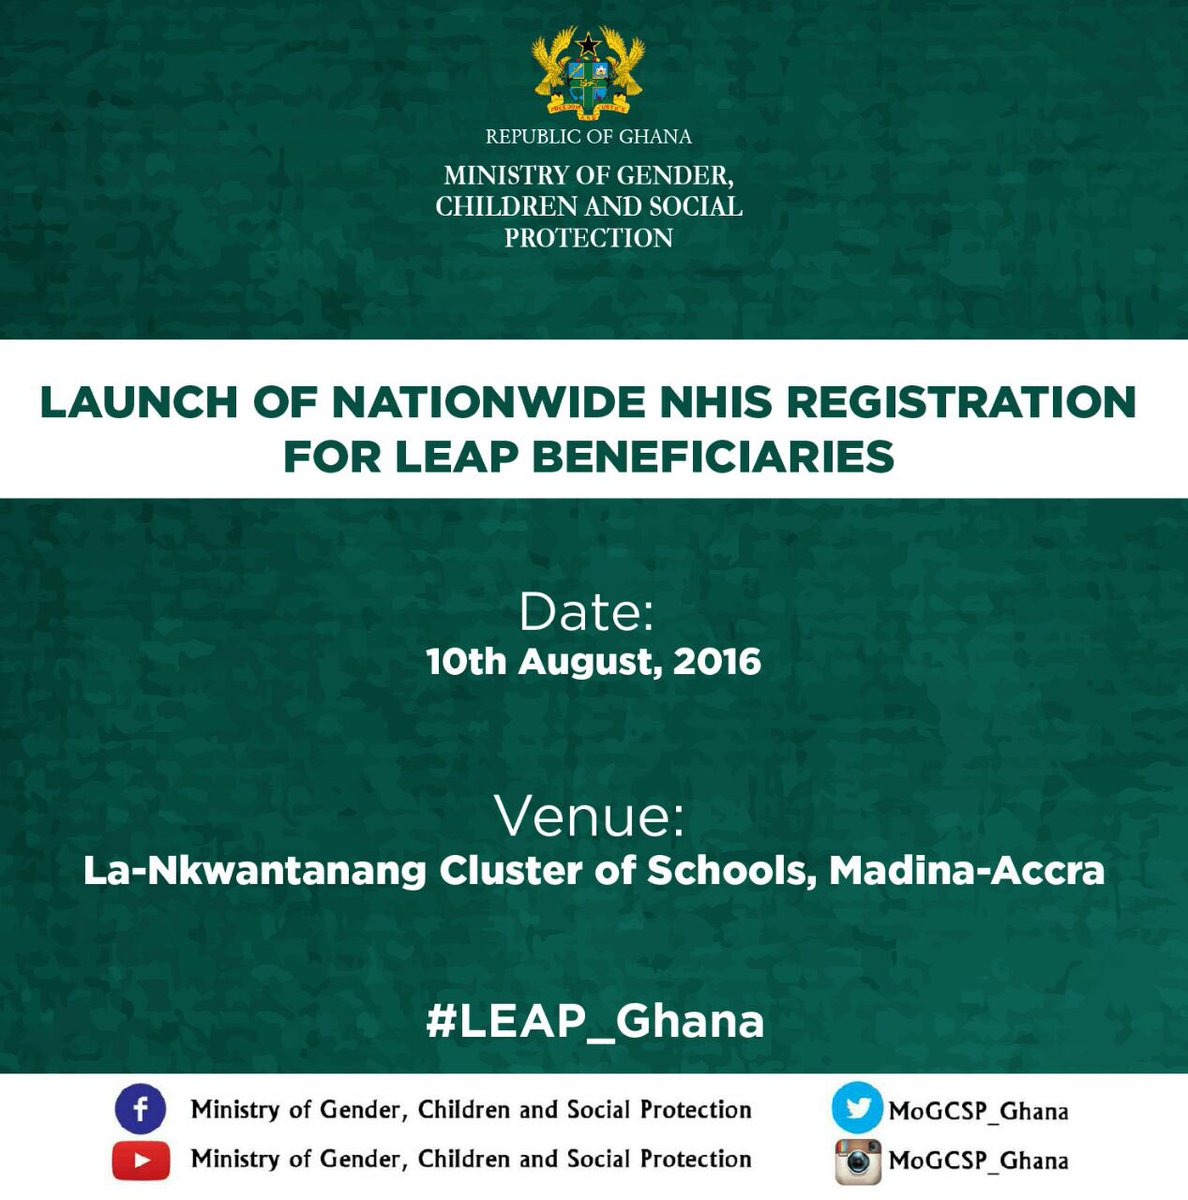 Join us to Launch the NHIS registration for LEAP beneficiaries on 10th August 2016 @Citi973